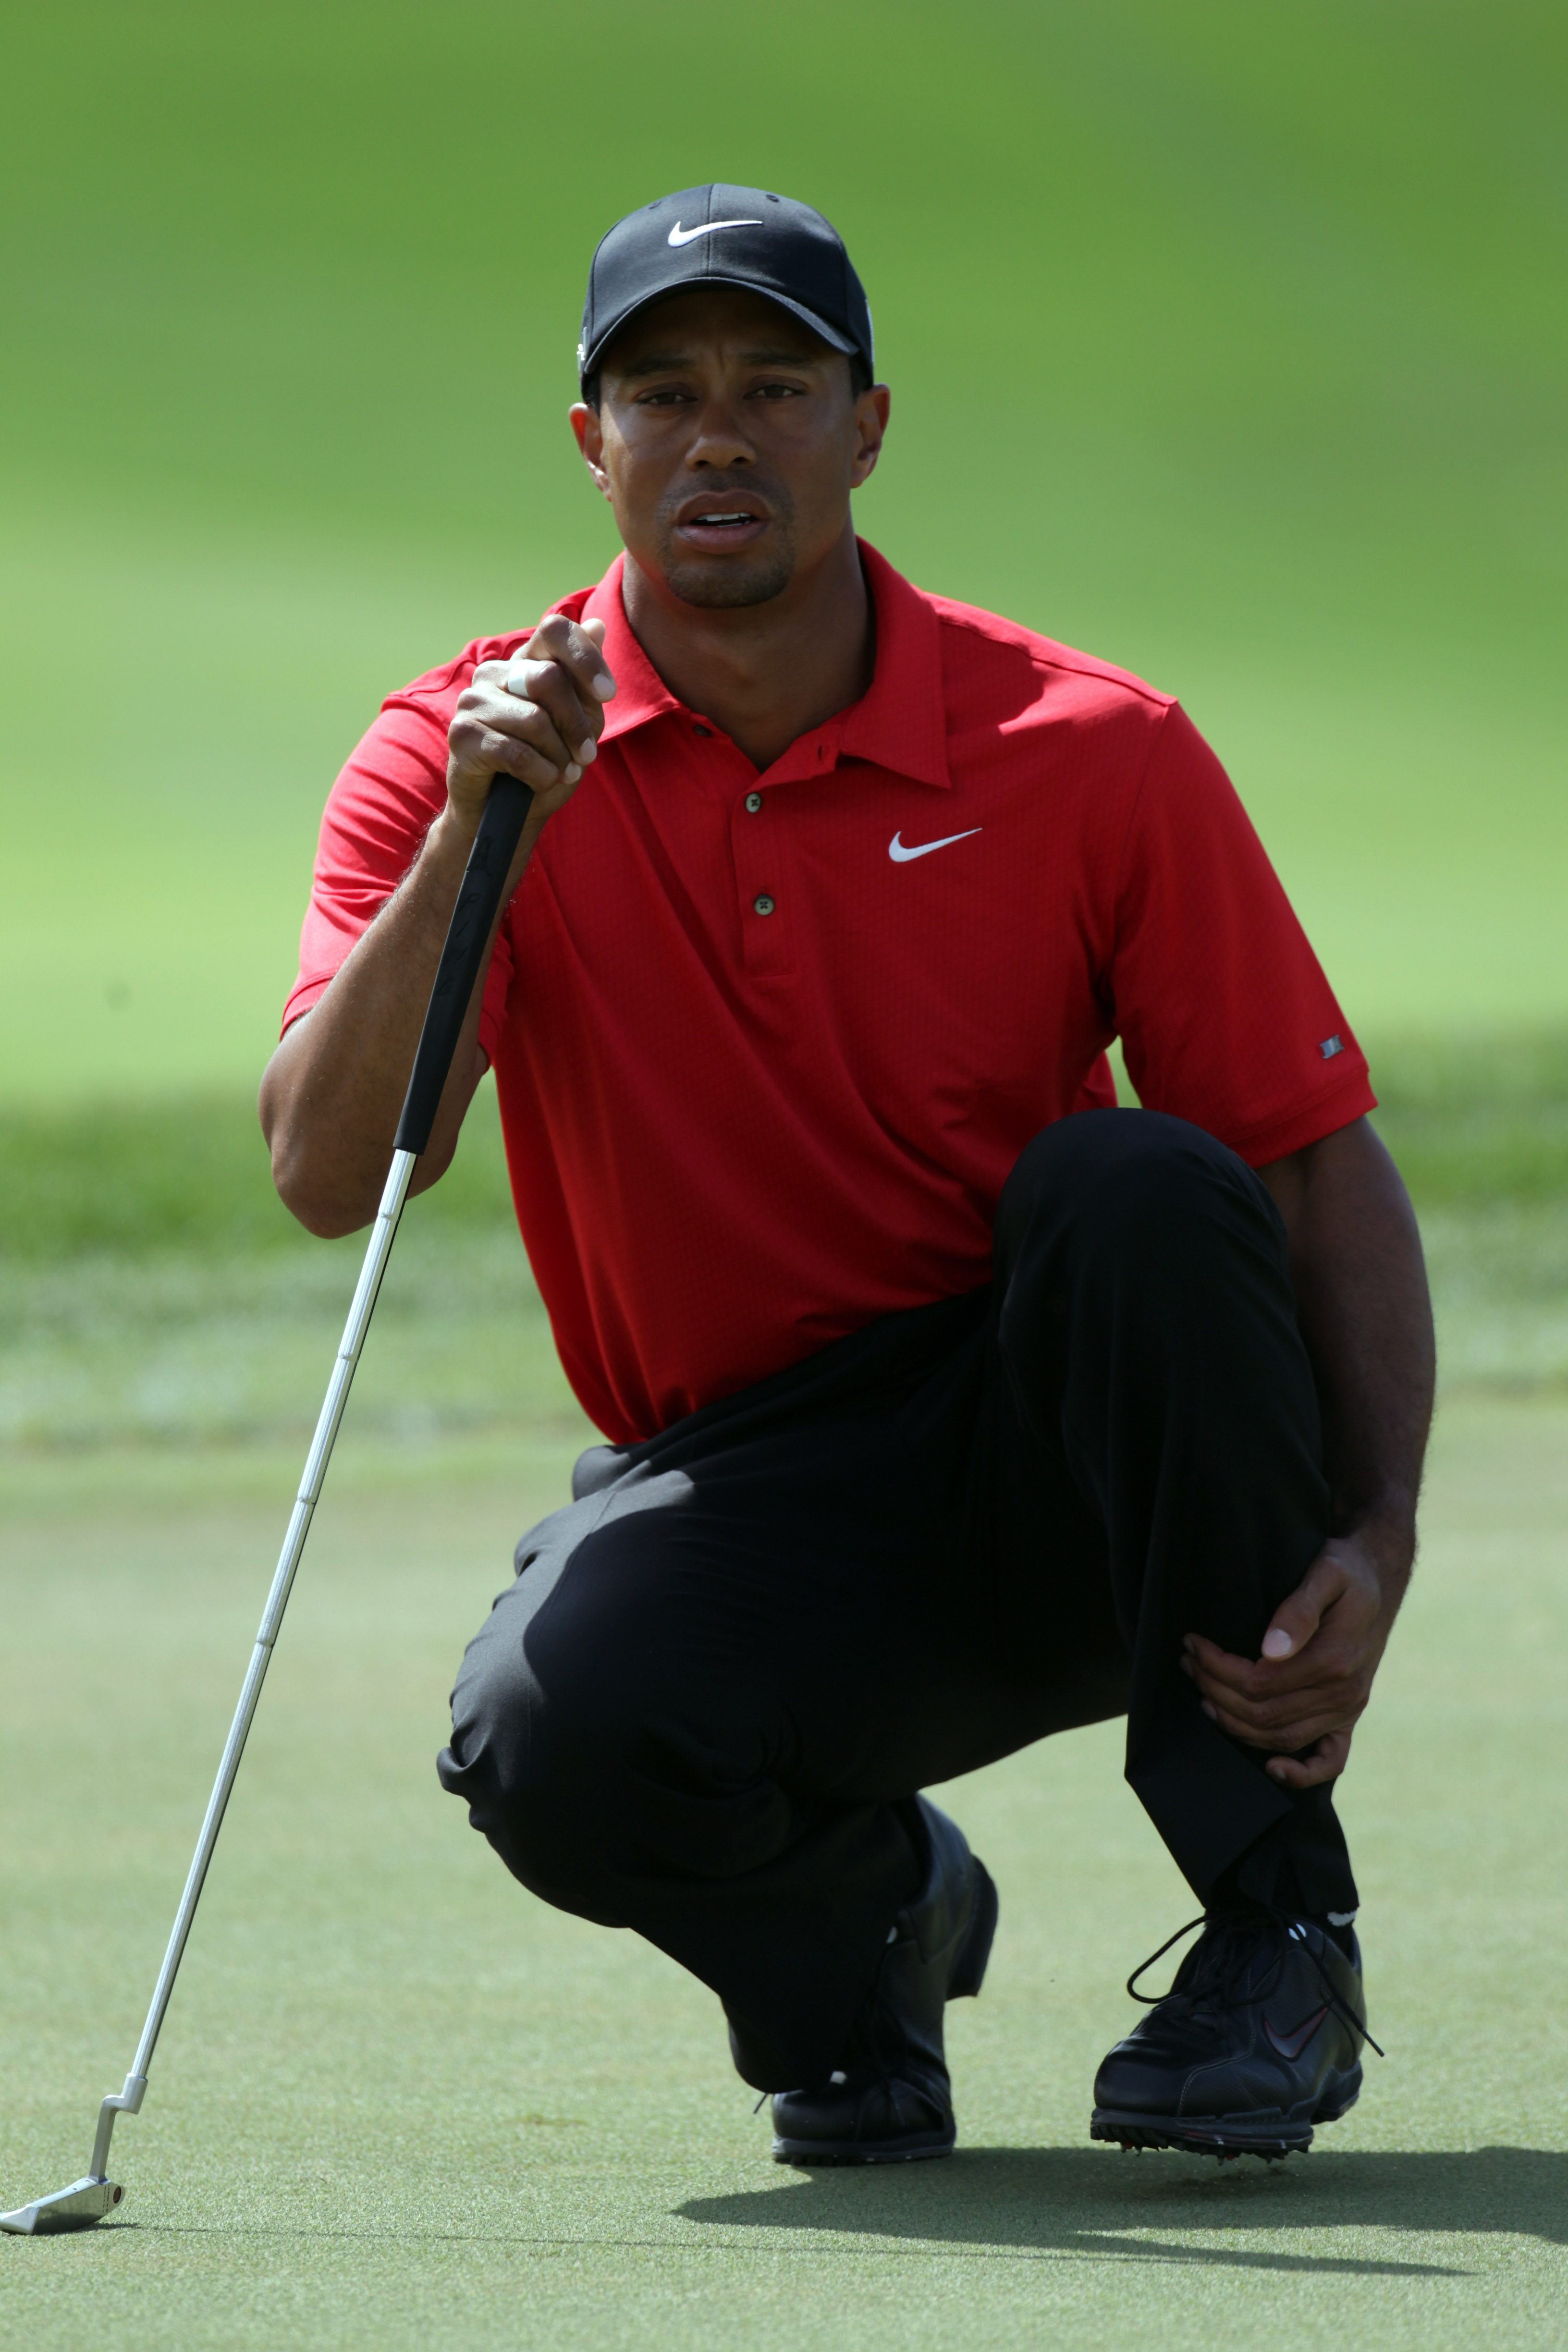 DUBAI, UNITED ARAB EMIRATES - FEBRUARY 13:  Tiger Woods of the USA during the final round of the Omega Dubai Desert Classic on the Majlis course at the Emirates Golf Club on February 13, 2011 in Dubai, United Arab Emirates.  (Photo by Ross Kinnaird/Getty